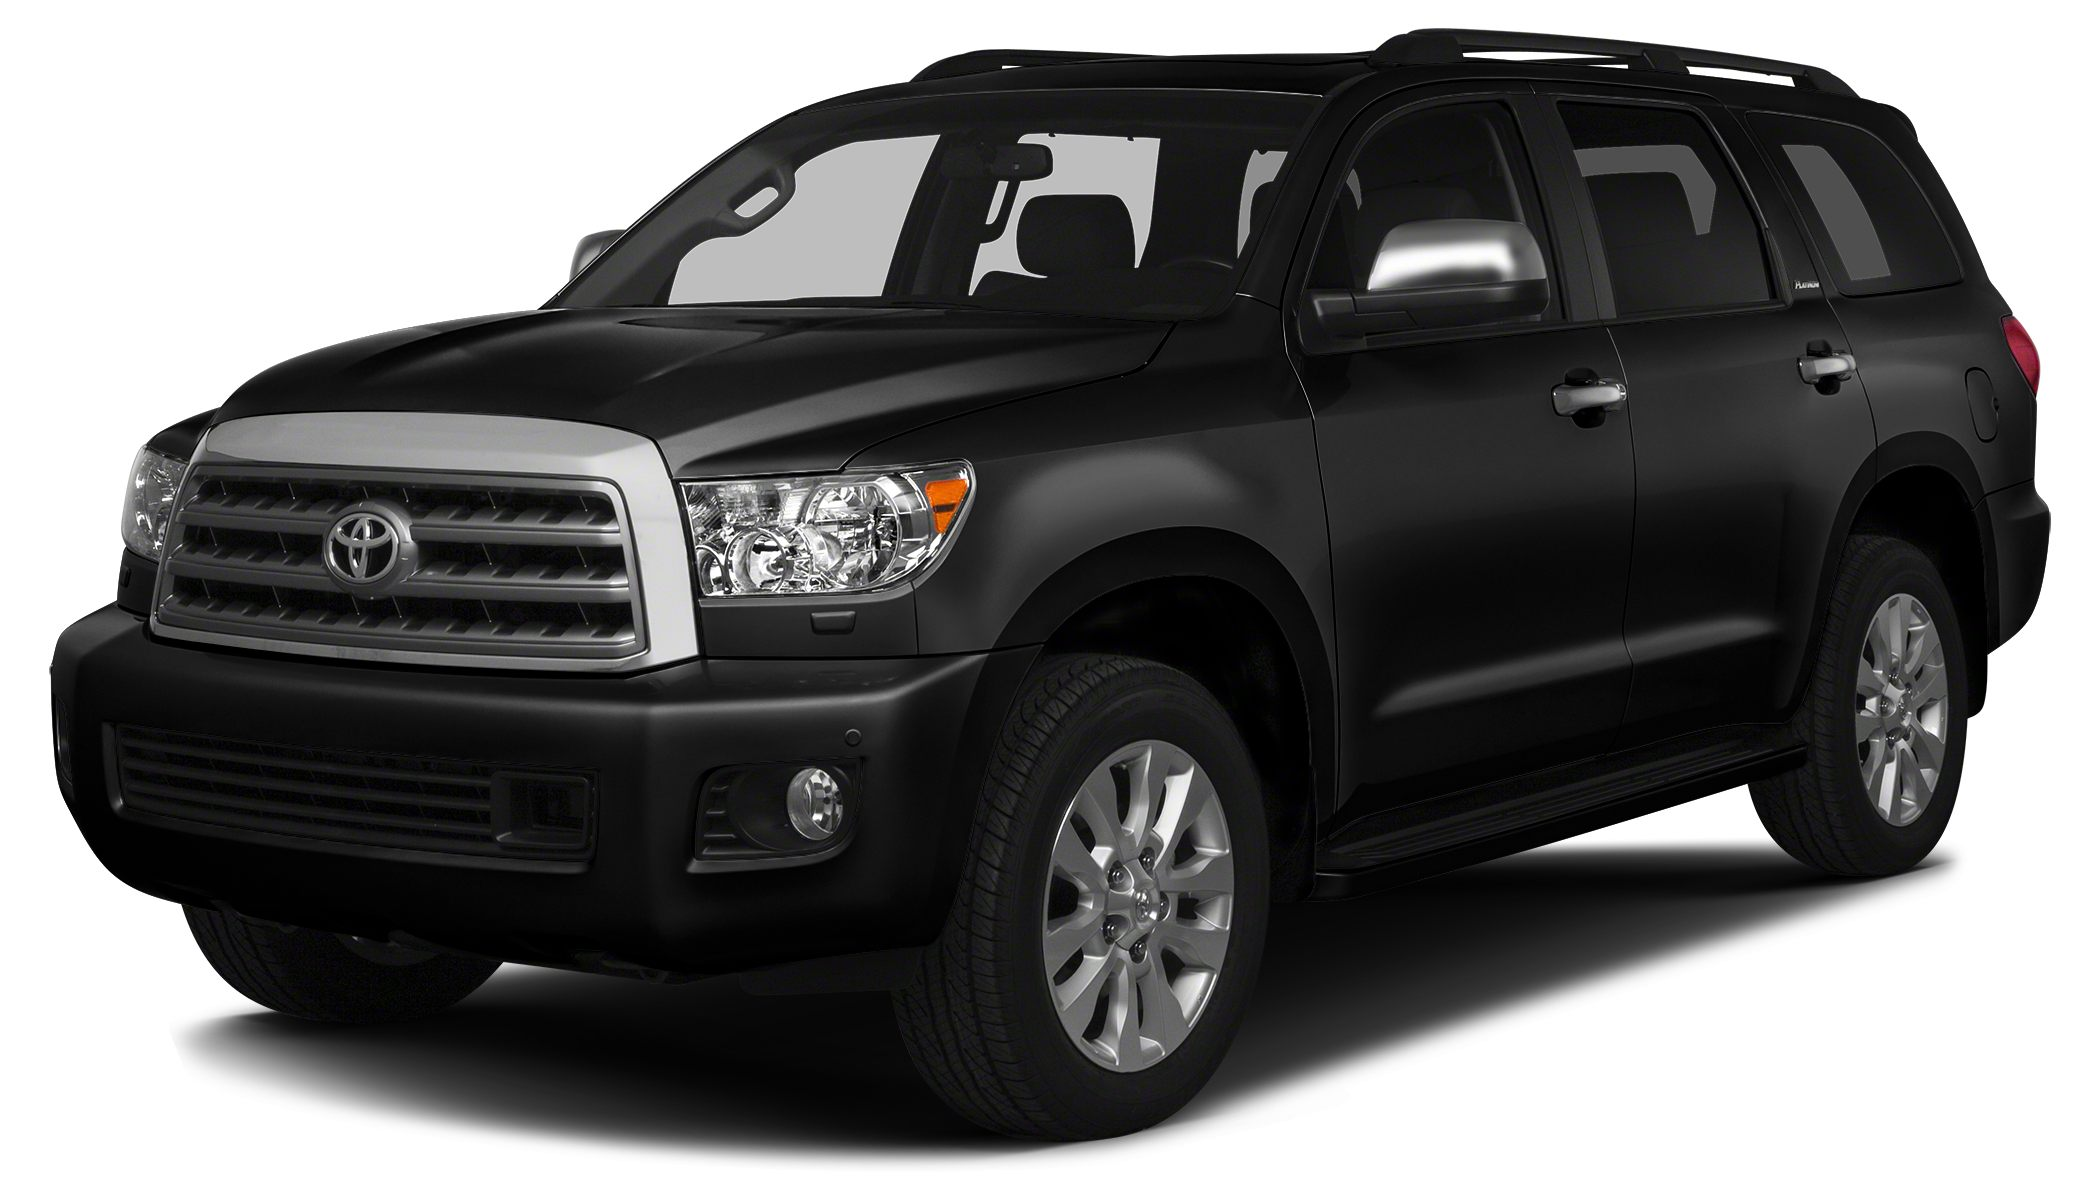 2016 Toyota Sequoia SR5 A winning value Take a road any road Now add this SUV and watch how that